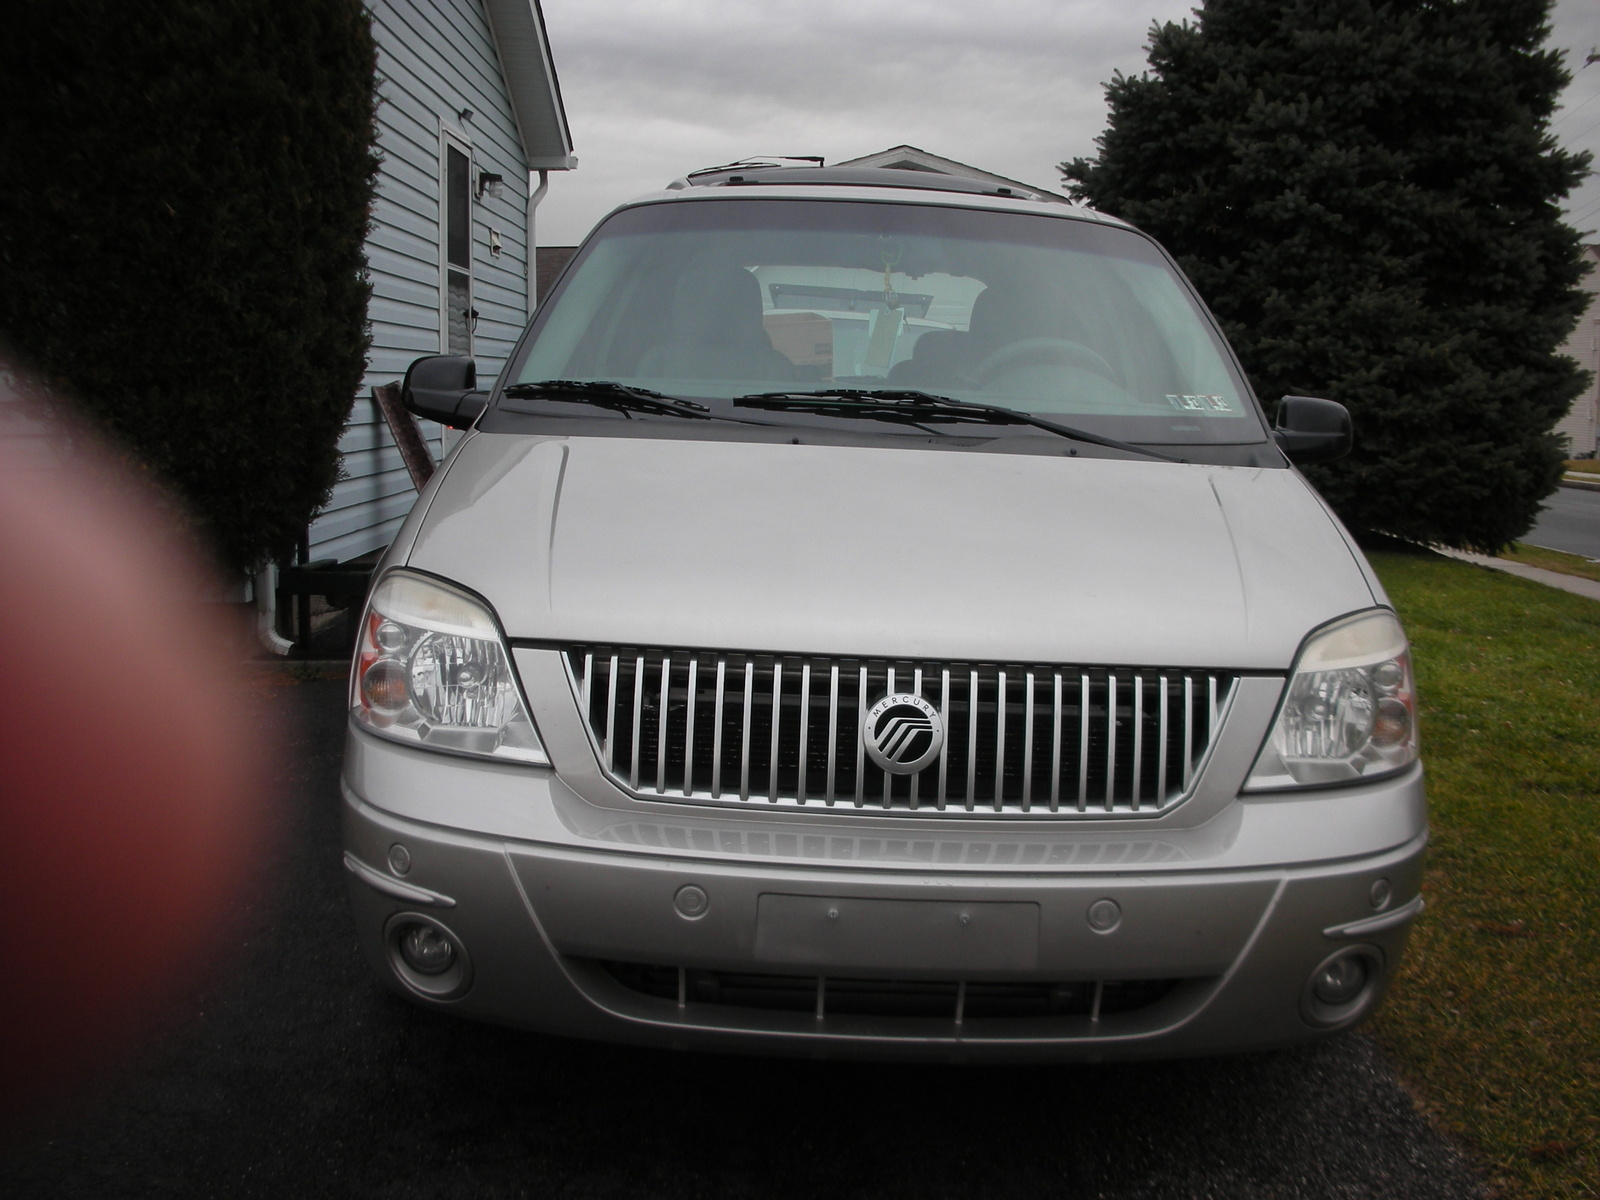 Picture of 2004 Mercury Monterey 4 Dr STD Passenger Van